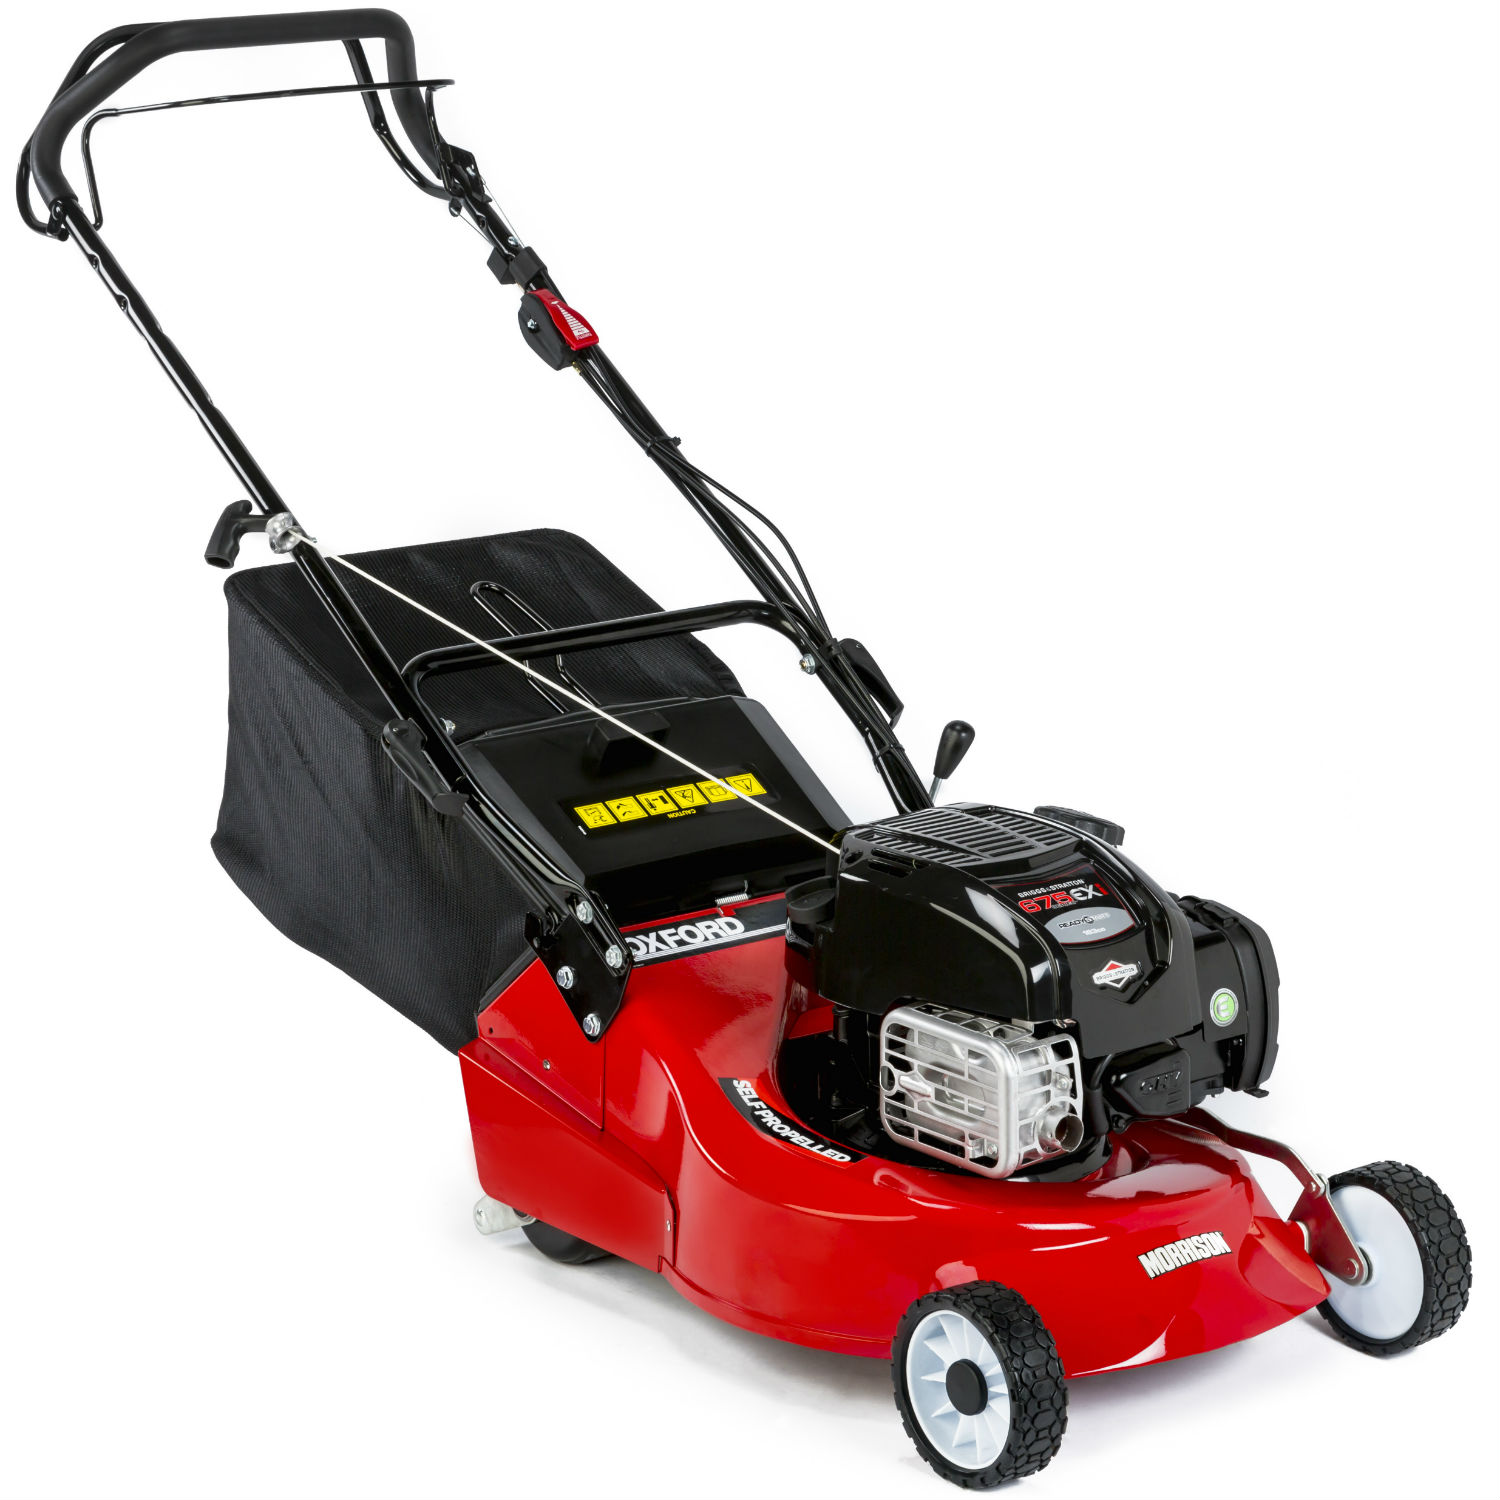 Morrison Oxford 48RS SelfPropelled Petrol Roller Lawnmower Special Offer